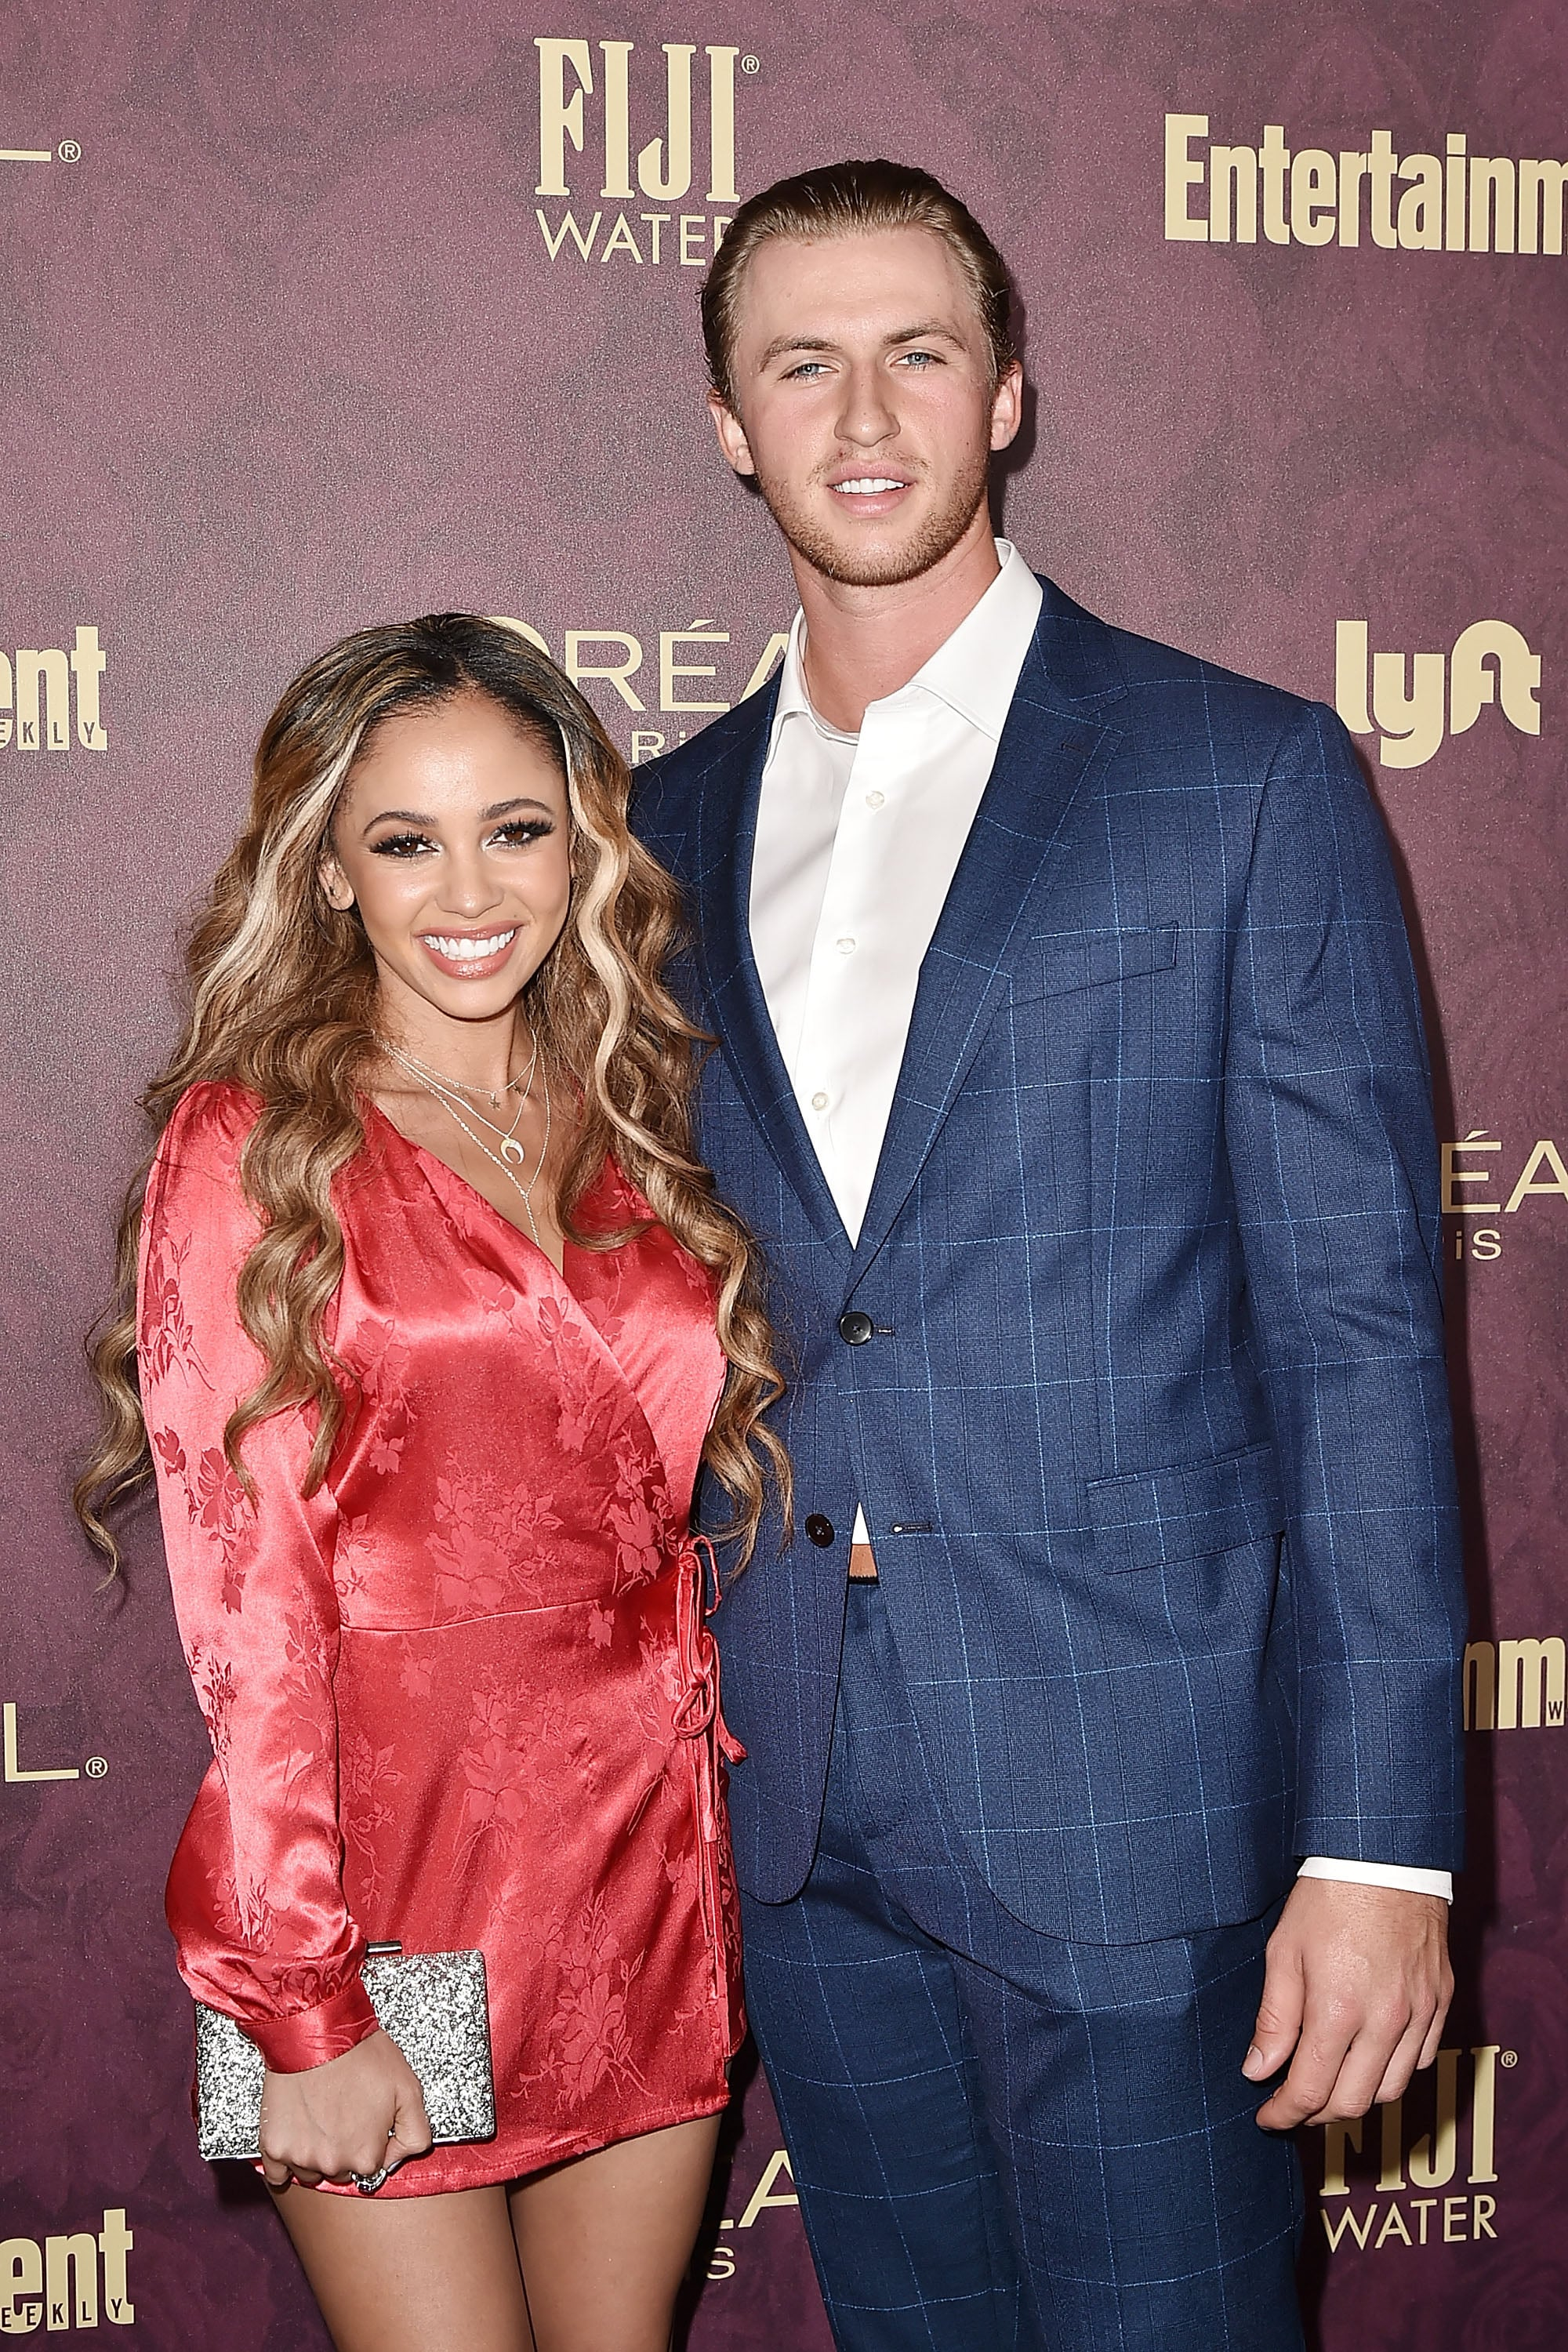 WEST HOLLYWOOD, CA - SEPTEMBER 15:  Vanessa Morgan and Michael Kopech attend the Entertainment Weekly Pre-Emmy Party 2018 at Sunset Tower Hotel on September 15, 2018 in West Hollywood, California.  (Photo by David Crotty/Patrick McMullan via Getty Images)